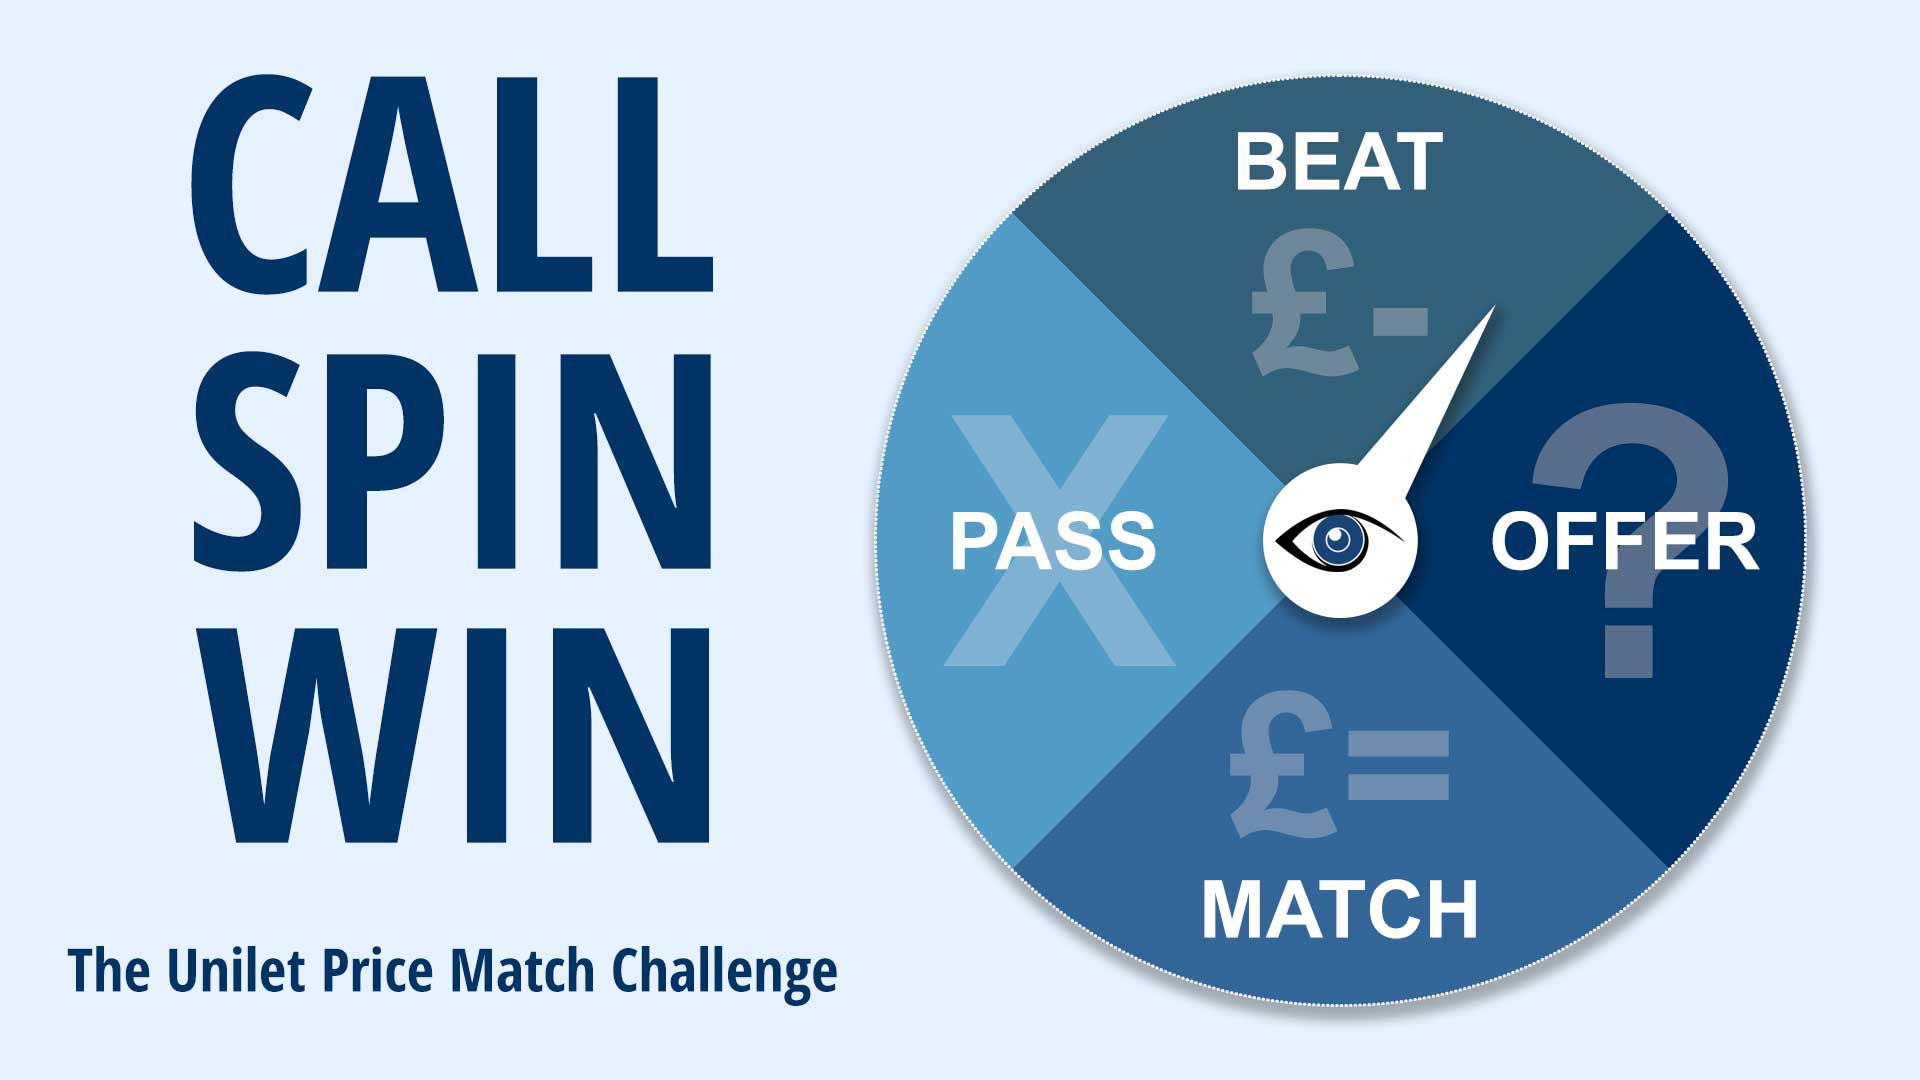 Call - Spin - Win | Unilet Price Match Challenge